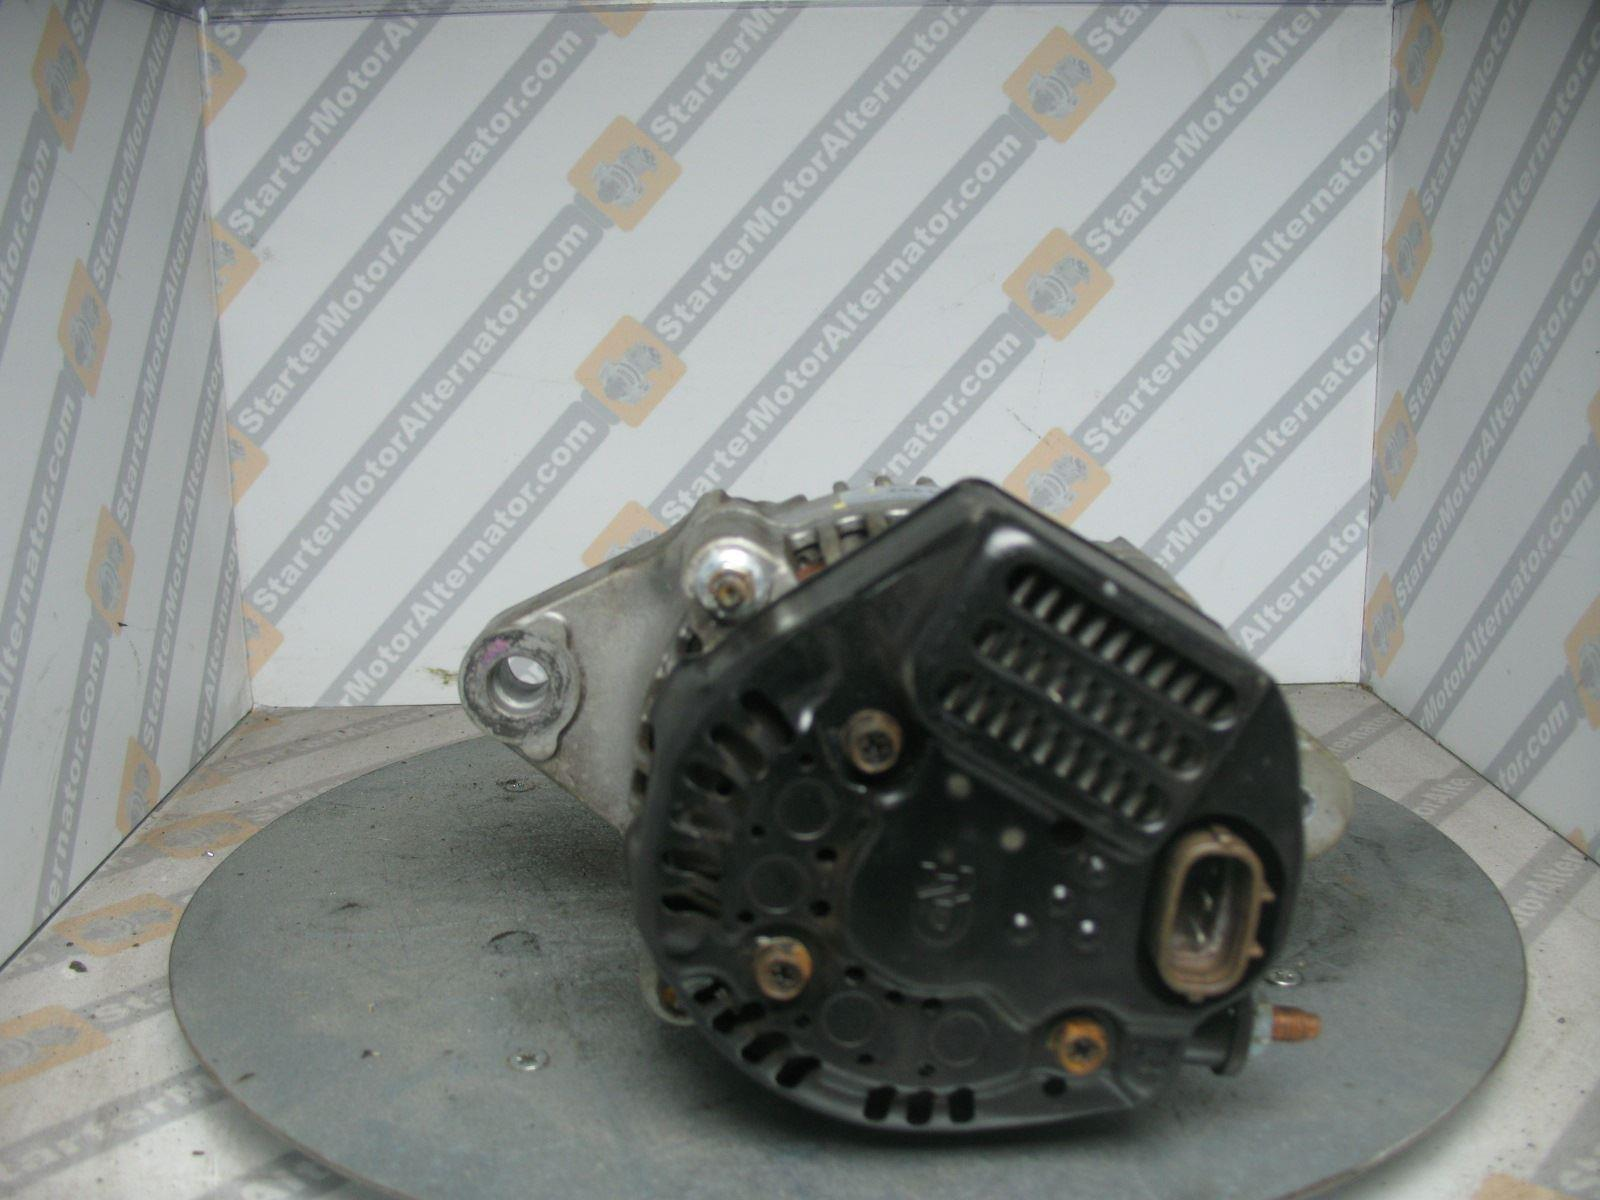 XIK3058 Alternator For John Deere / New Holland / Volvo Bus/Penta/Truck / Yanmar